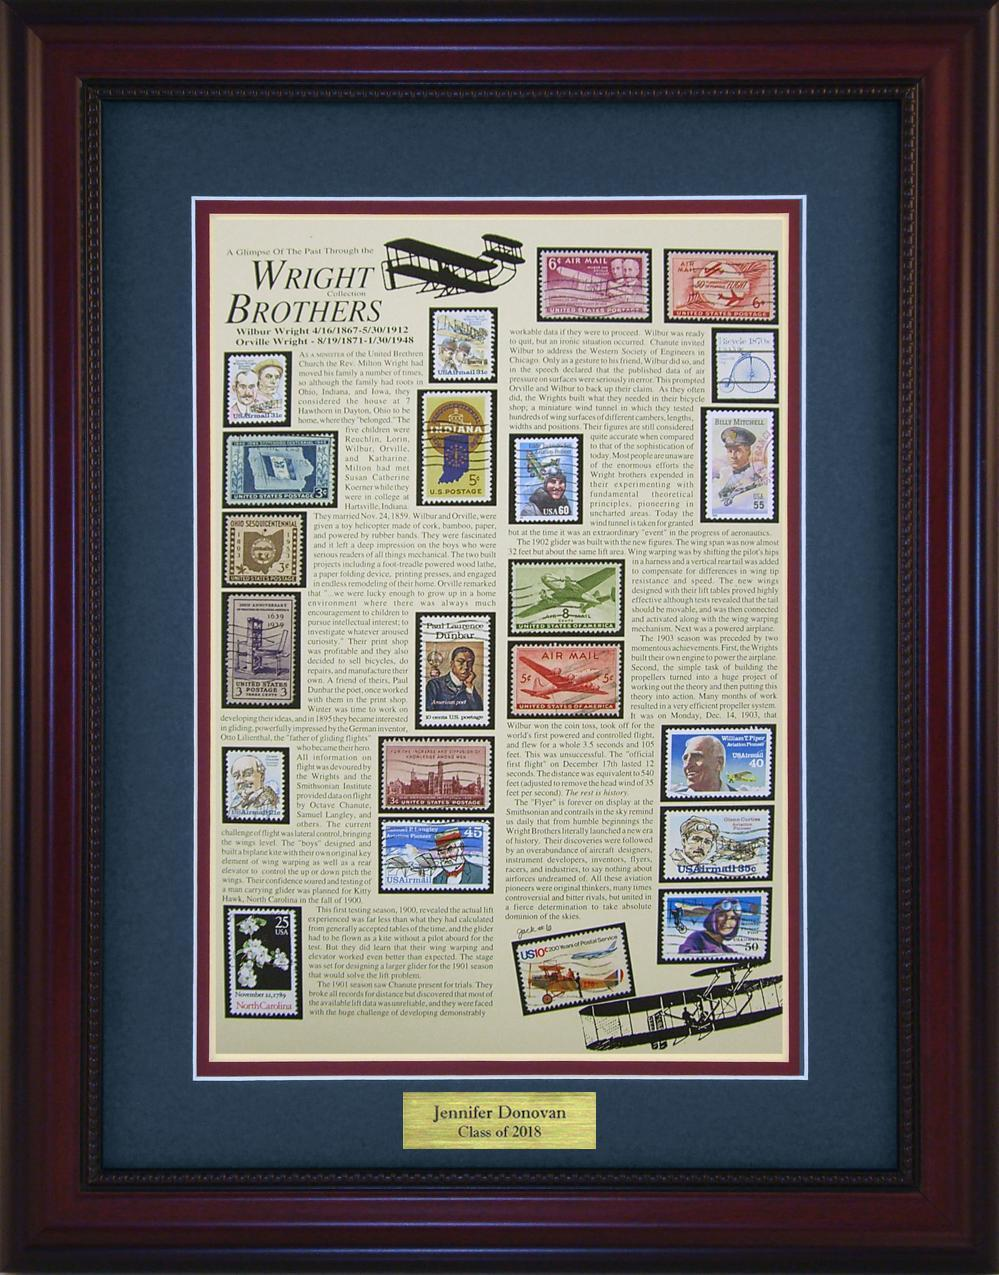 Wright Brothers - Personalized Unique Framed Gift